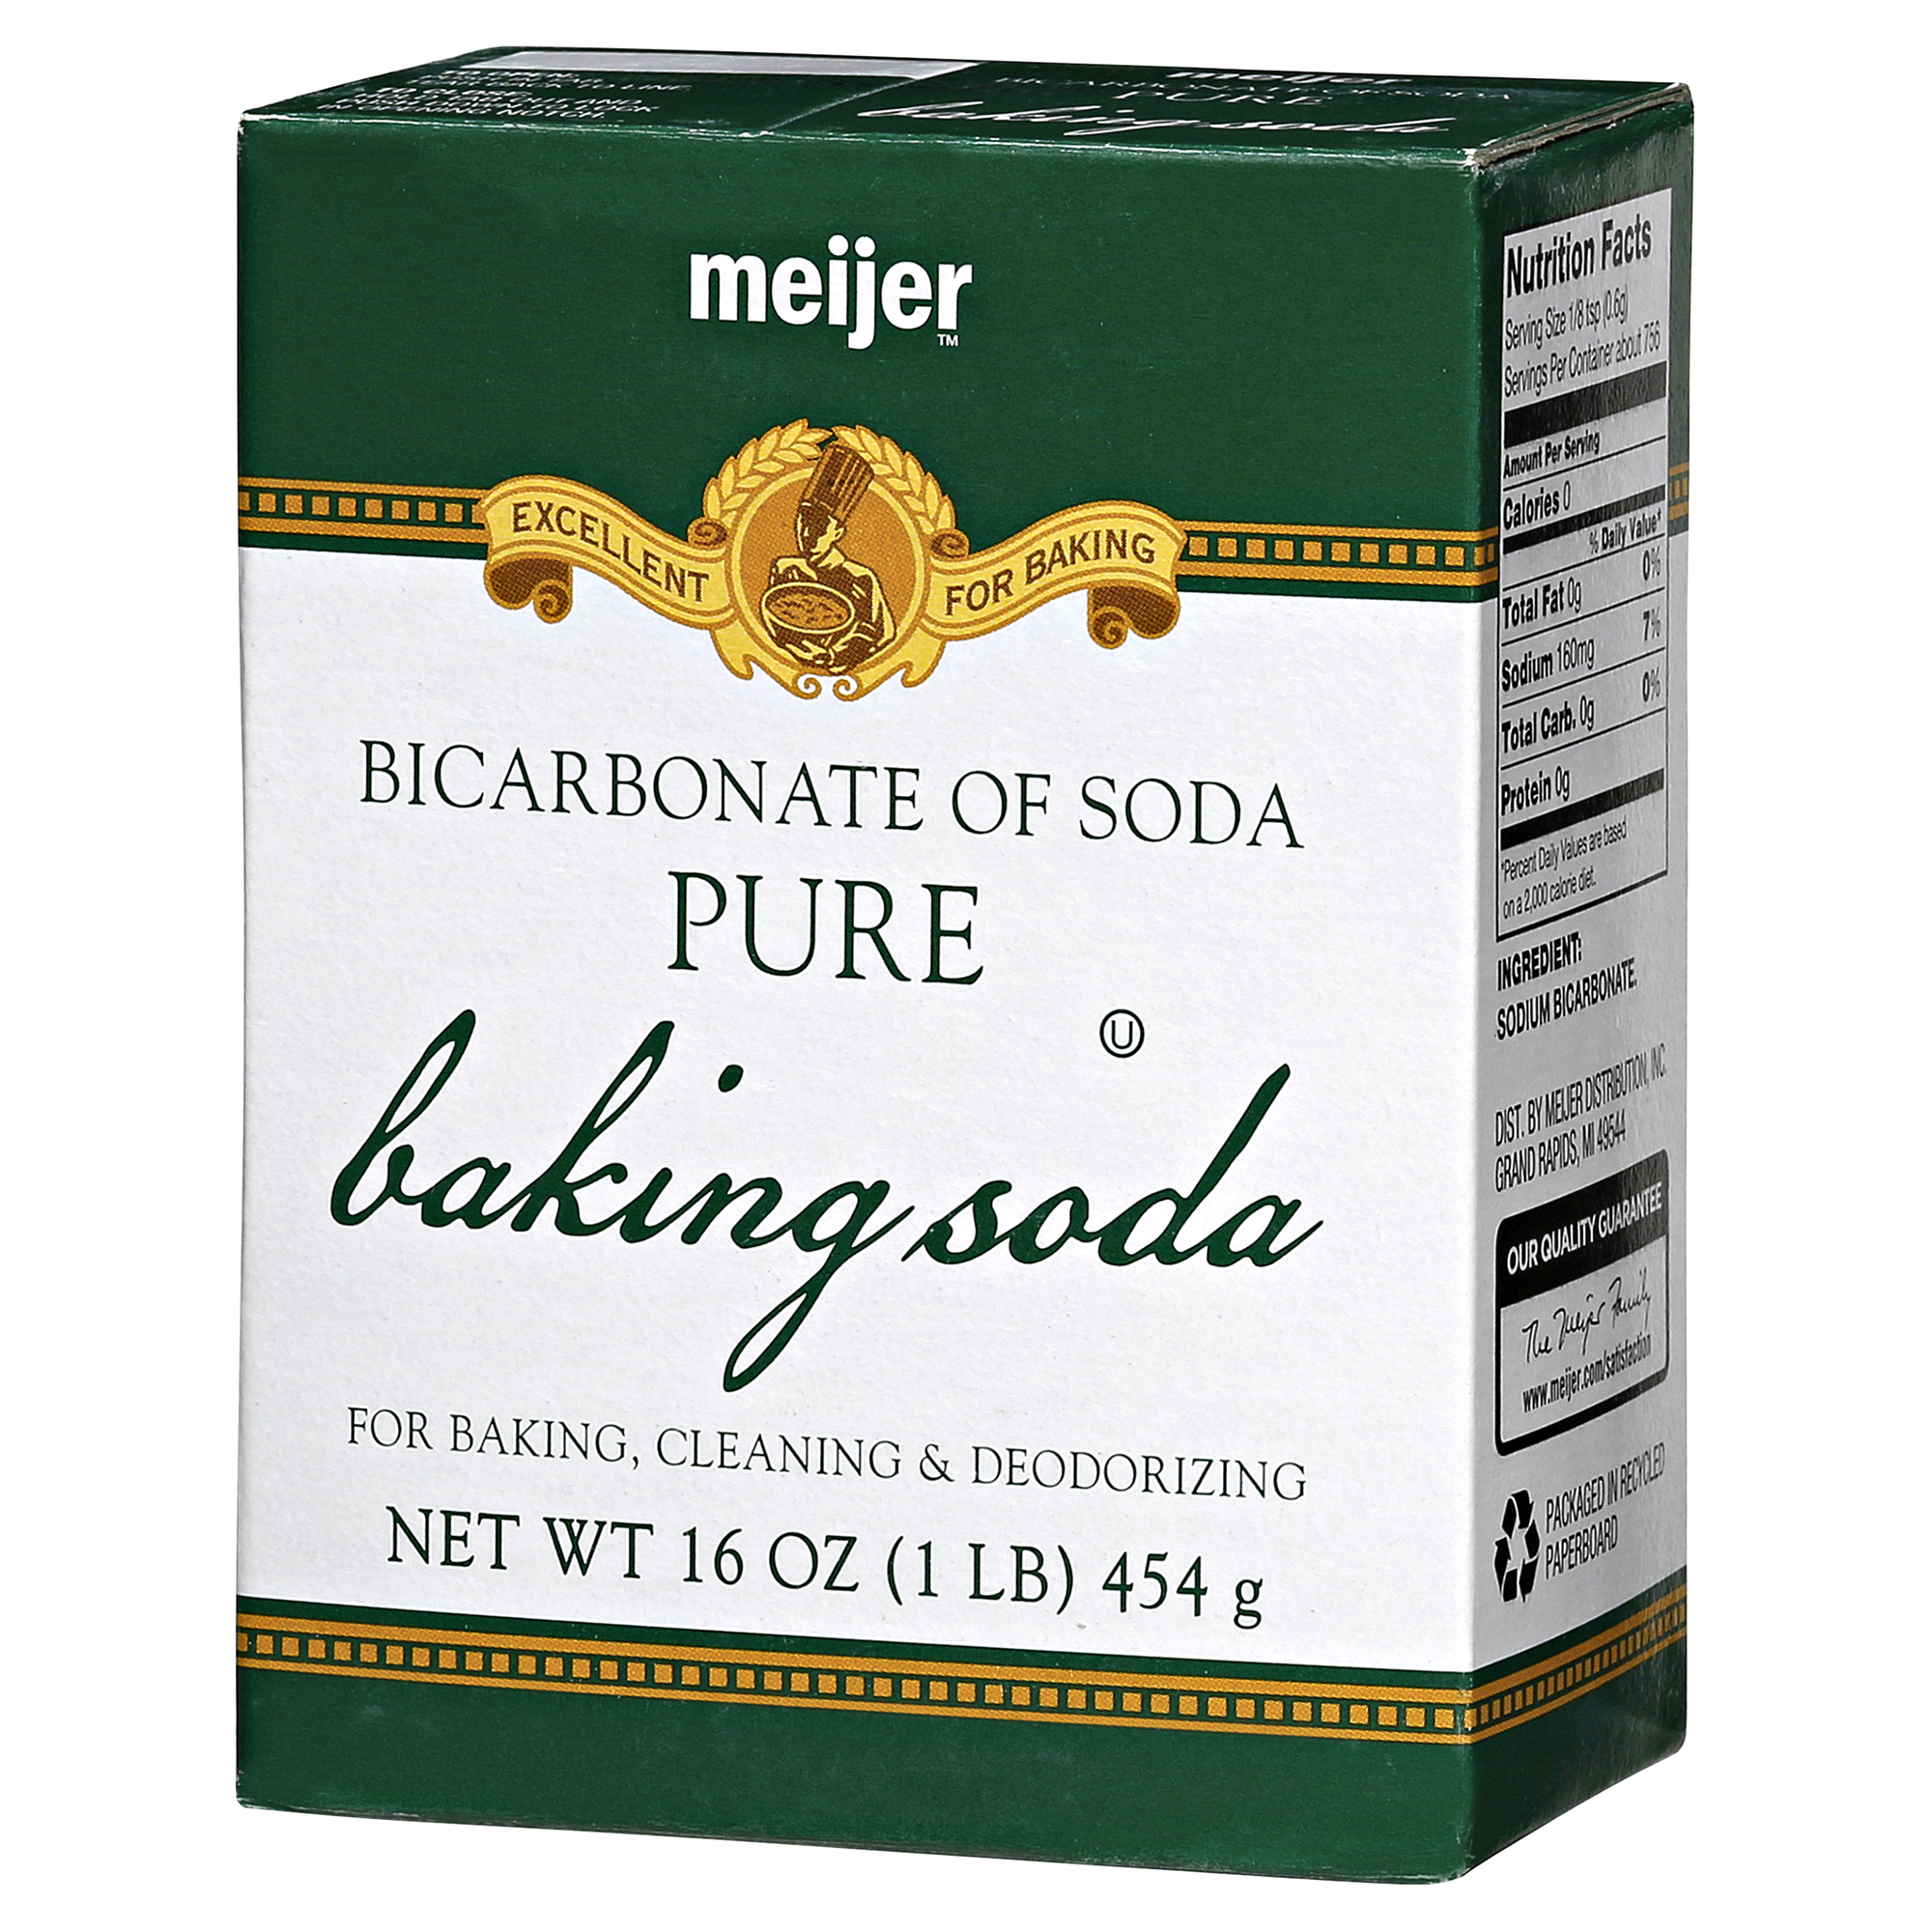 Meijer Baking Soda 16 oz